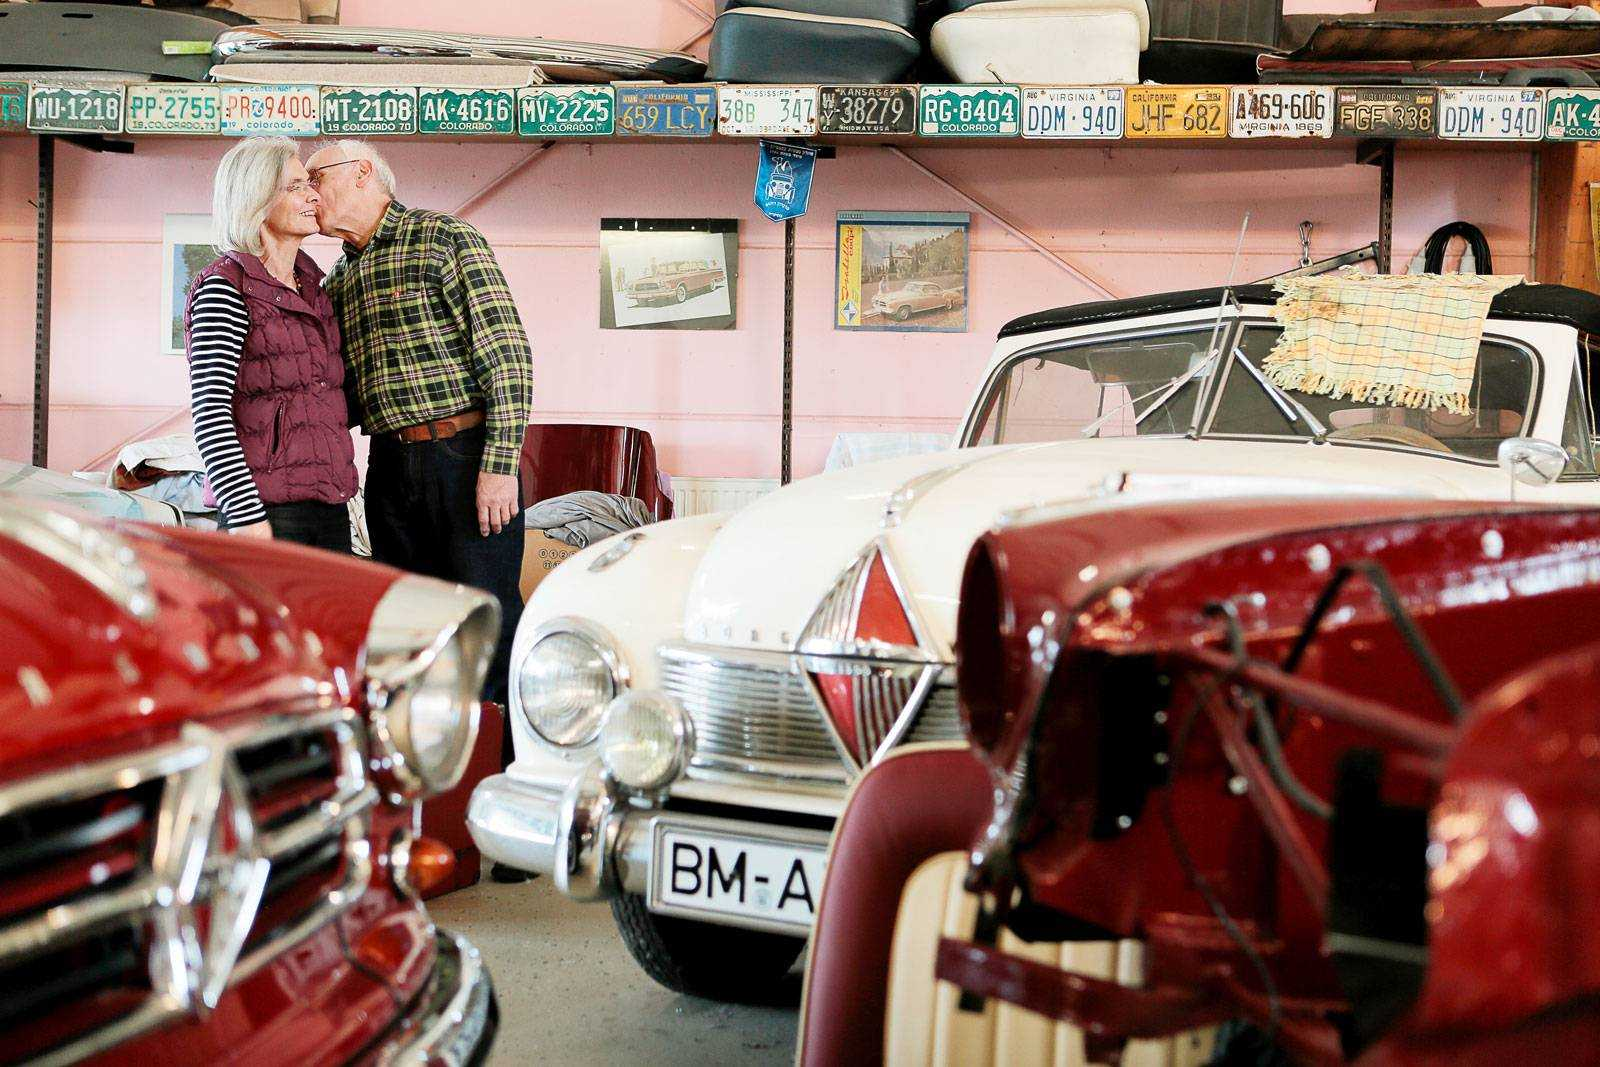 Passion of enthusiasts from borgward